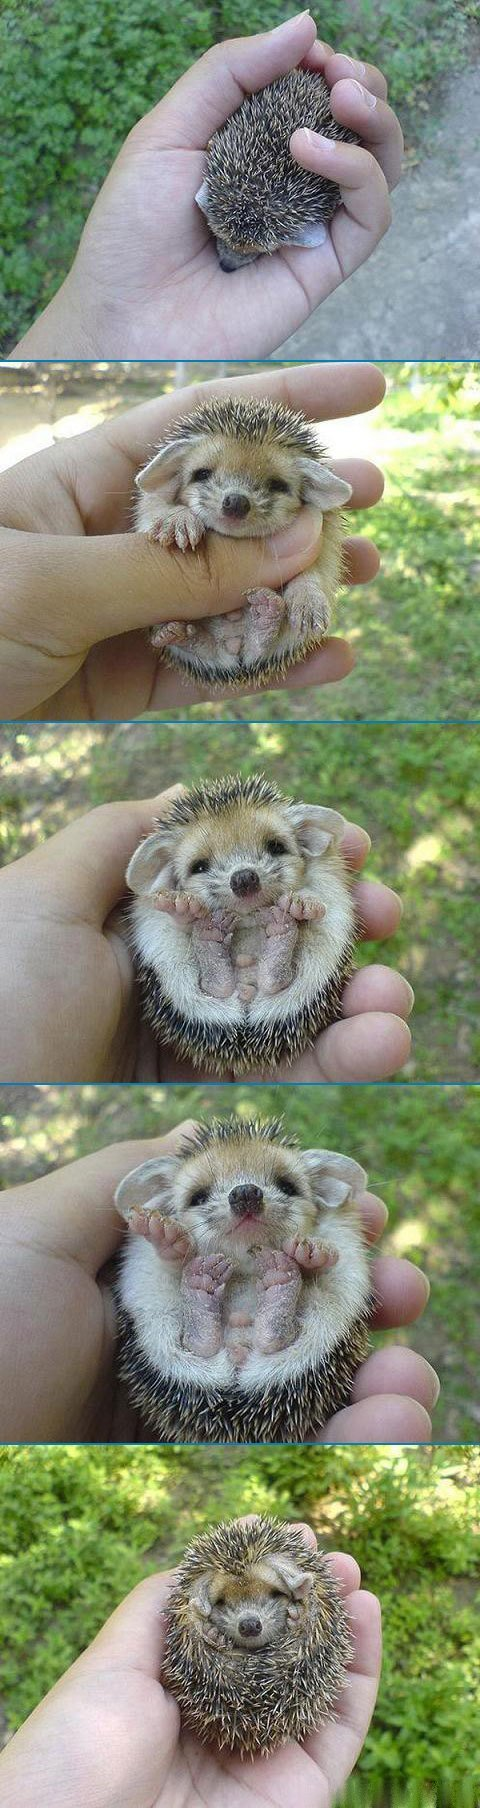 1236857477kd1zhe3 - cuttest little living thing is